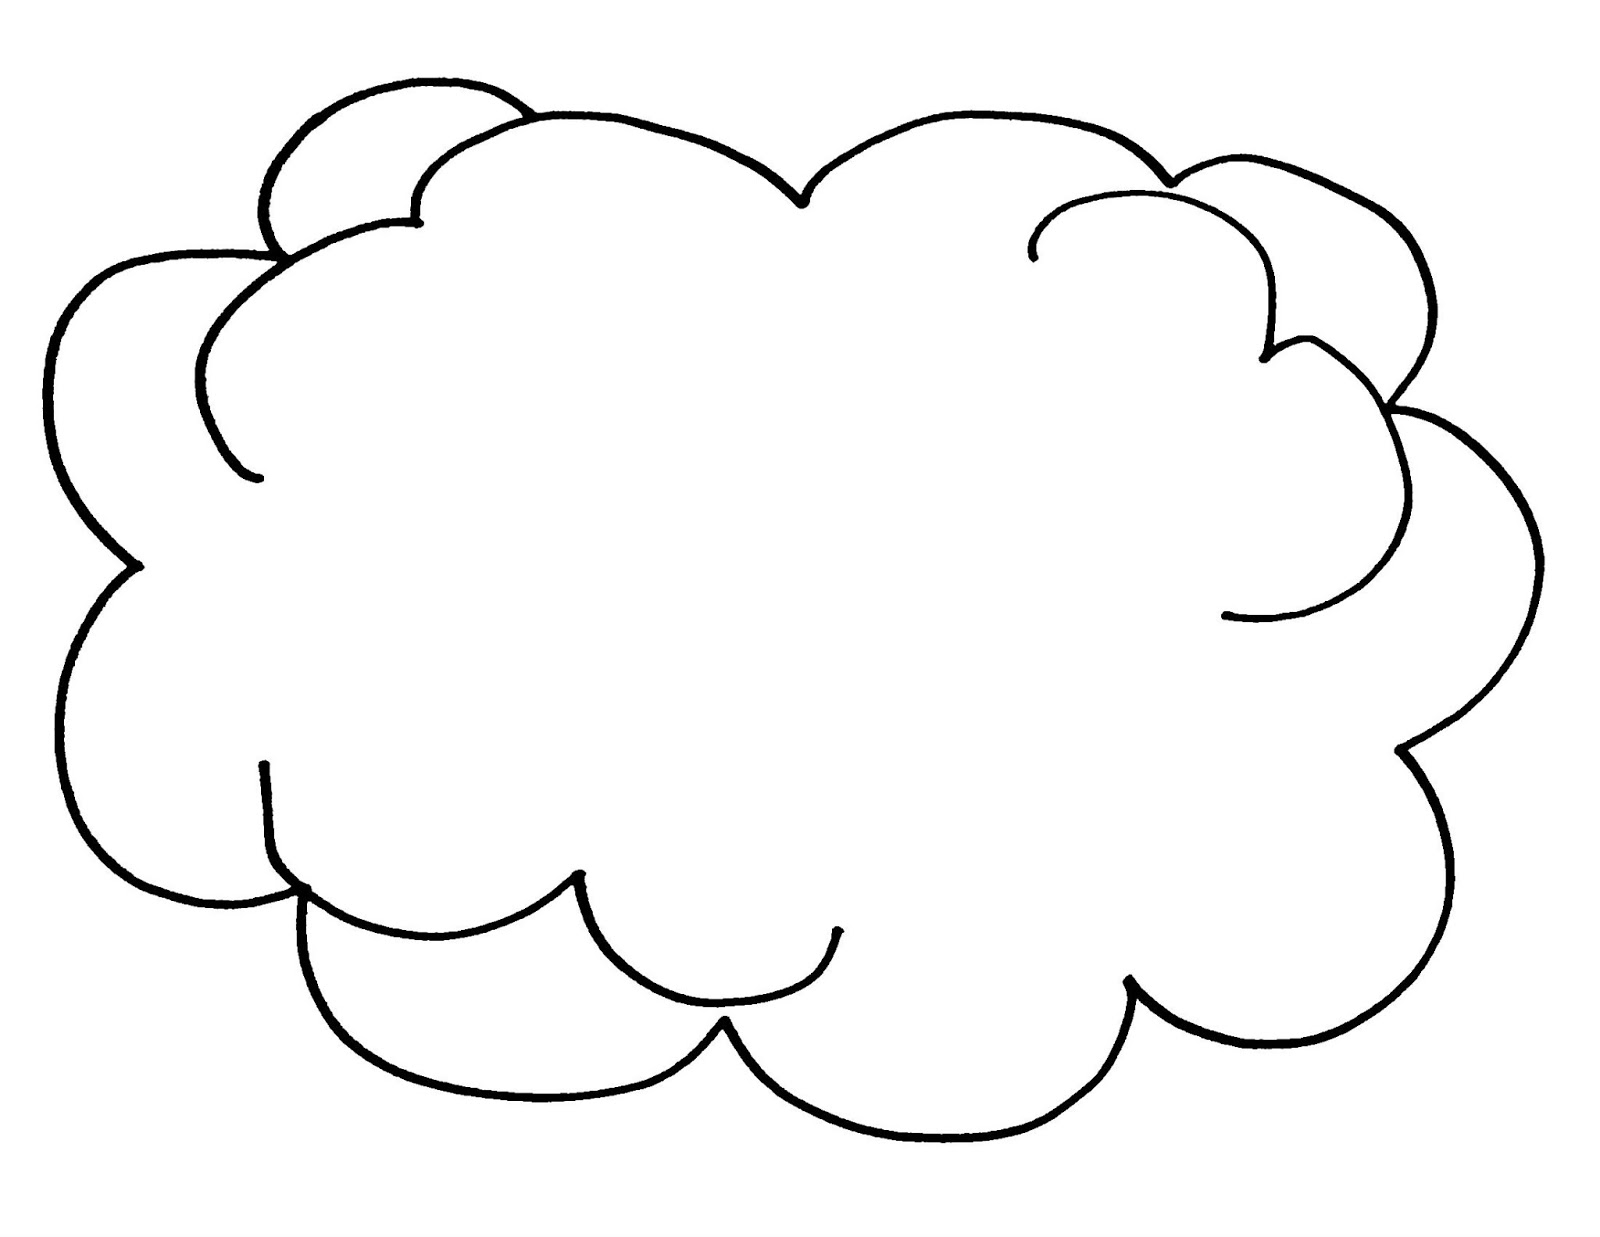 St patrick 39 s day rainbow craft activity 3 day freebie for Coloring pages clouds